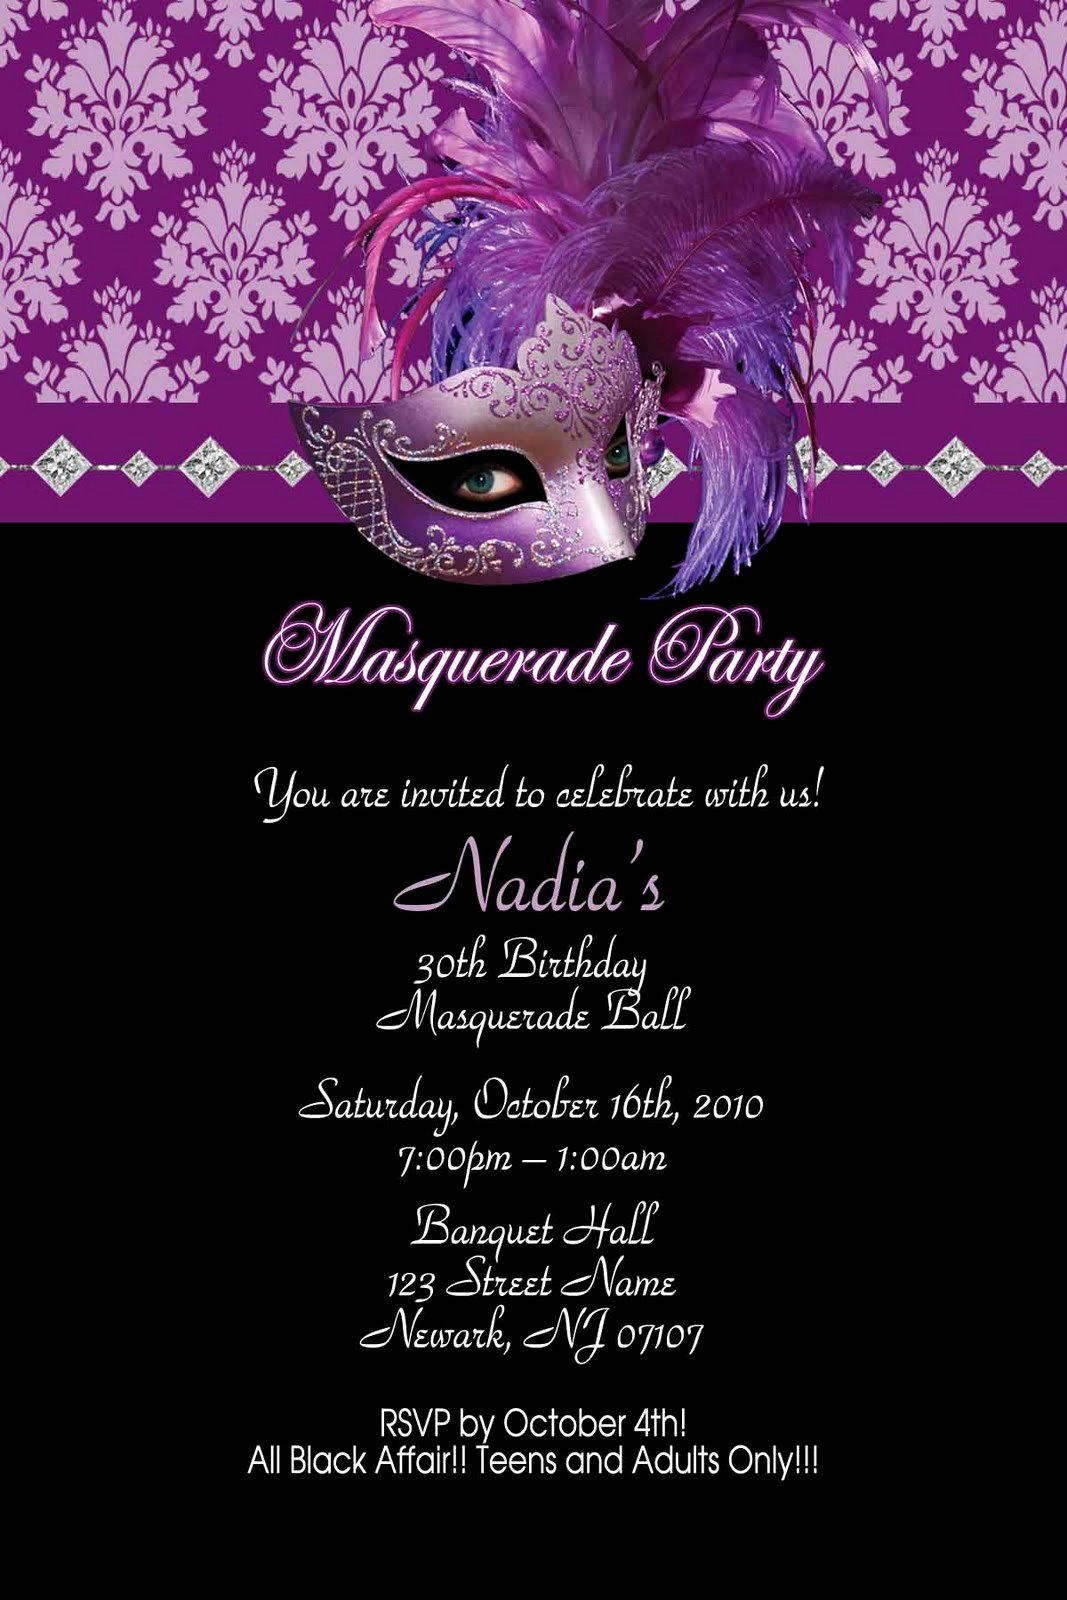 Yellow and orange Masquerade Happy Party Invitations